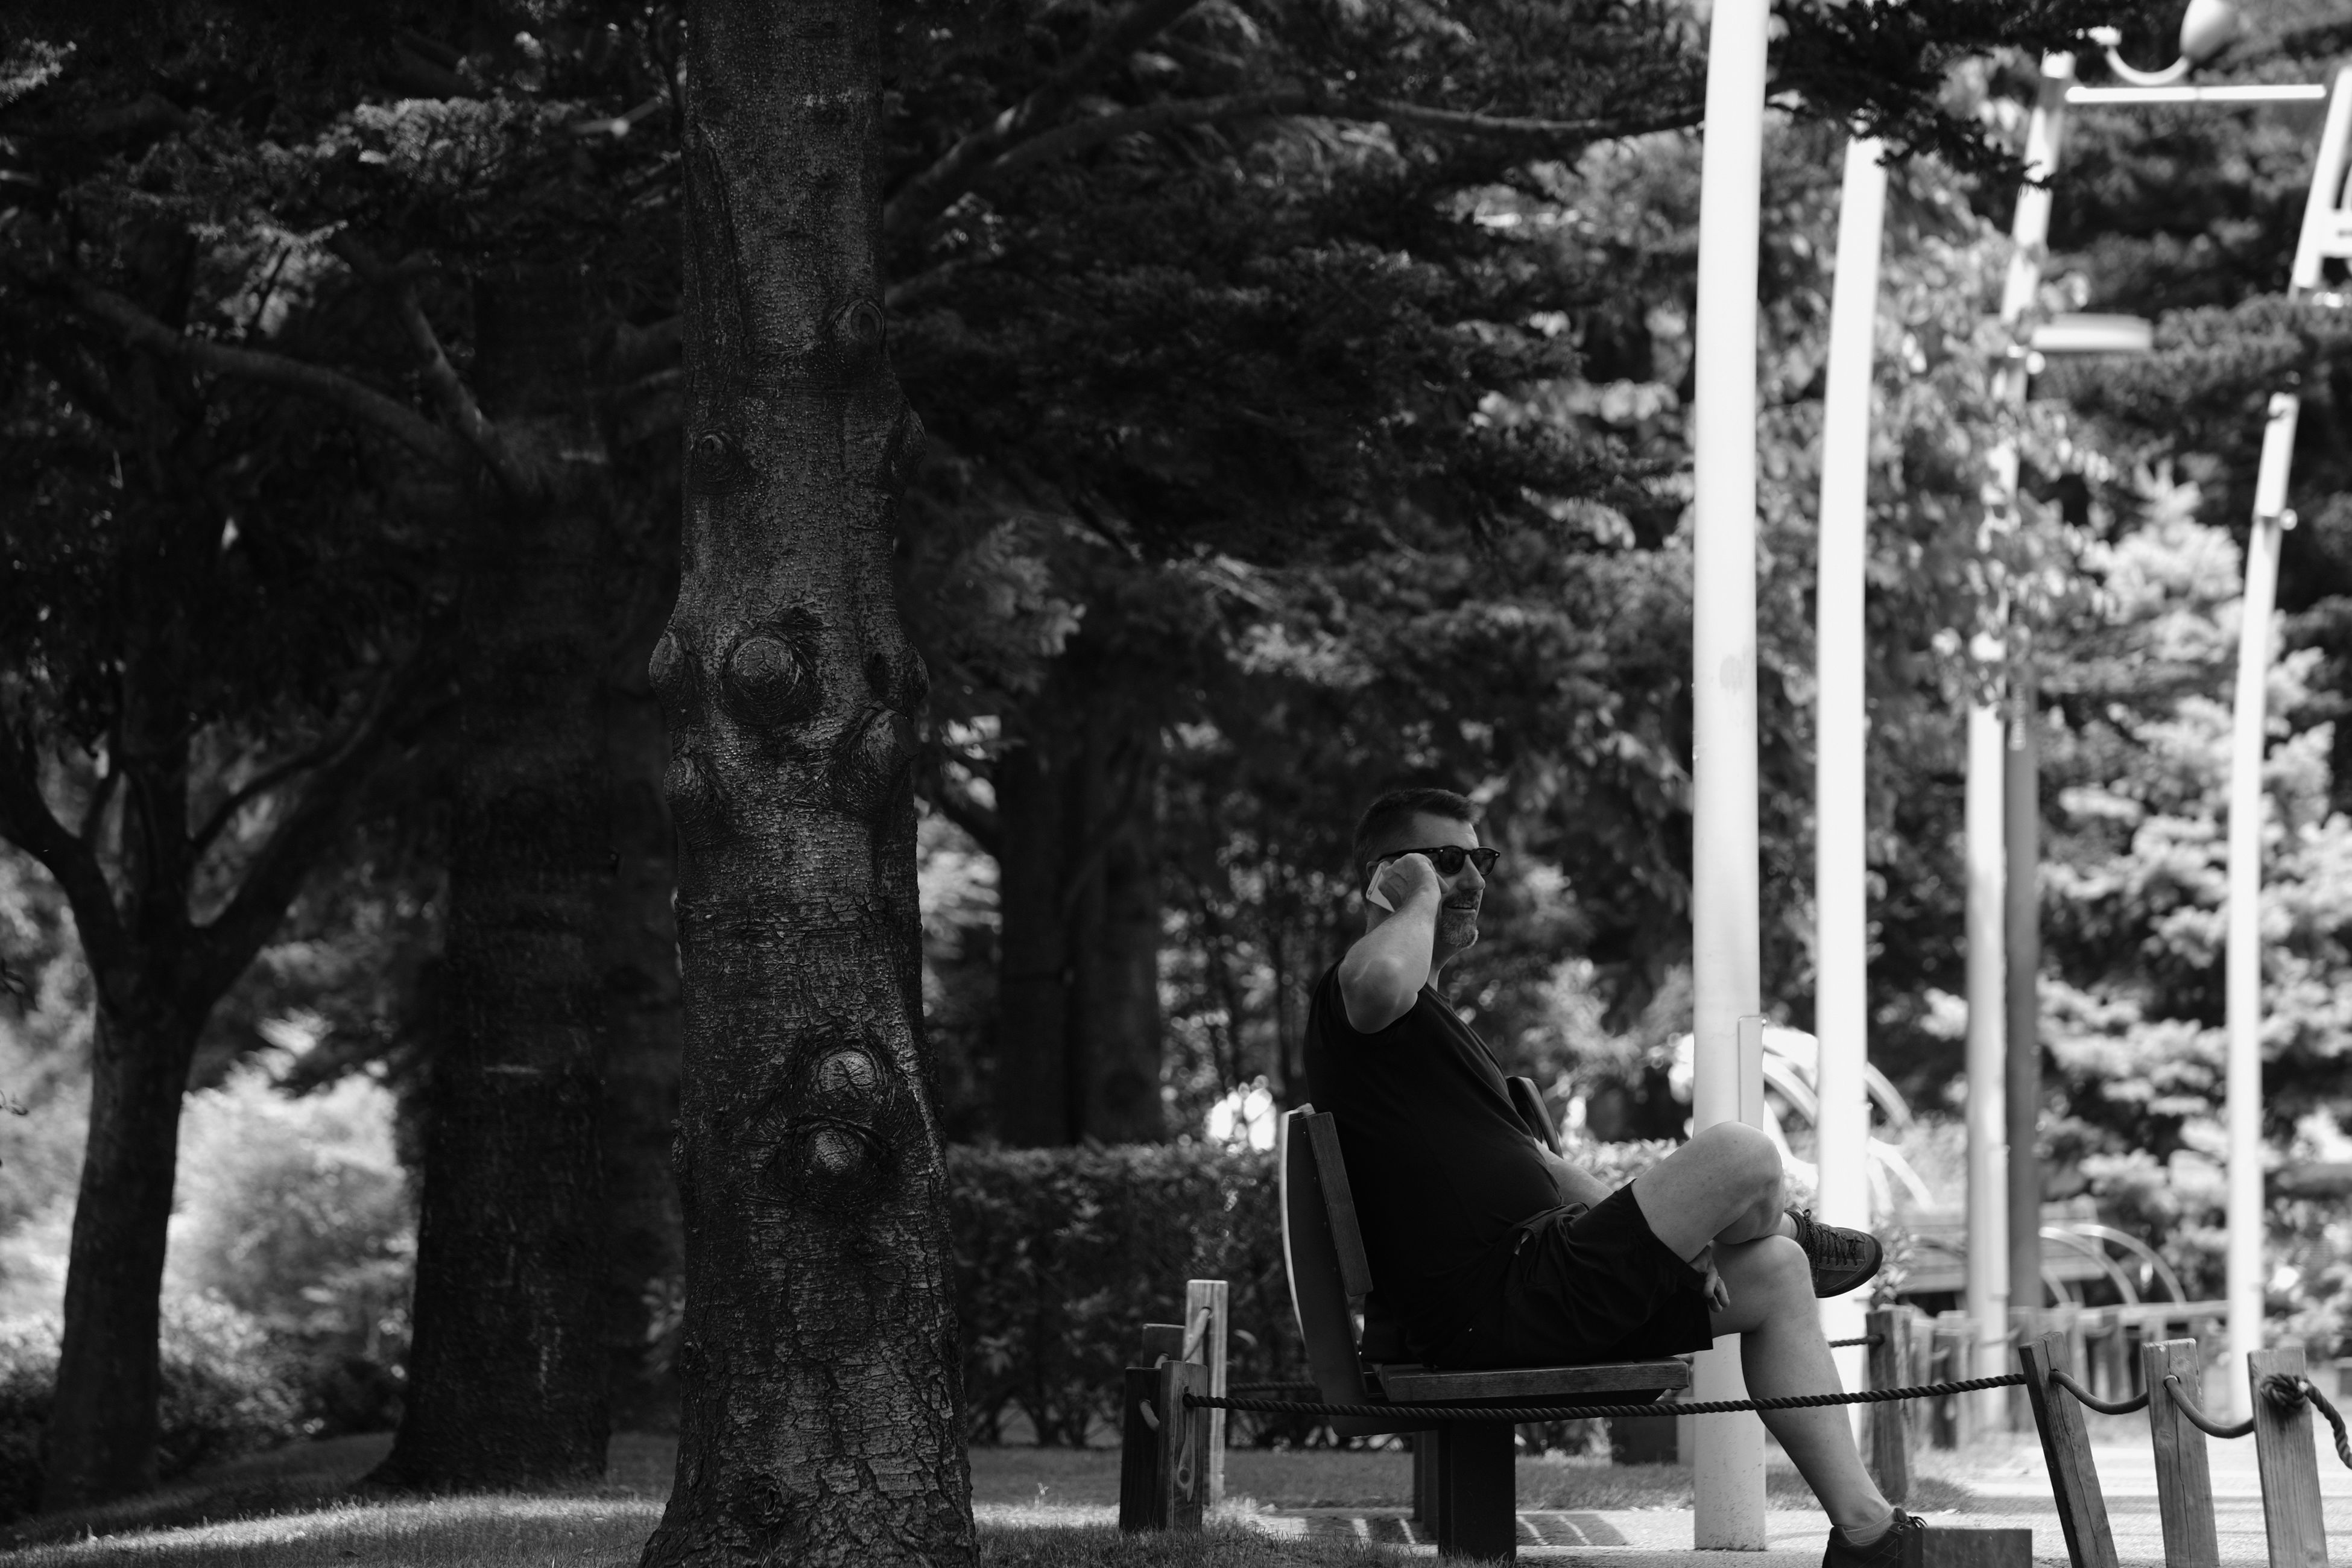 tree, sitting, real people, relaxation, one person, park - man made space, full length, tree trunk, leisure activity, lifestyles, nature, casual clothing, day, outdoors, chair, growth, seat, beauty in nature, people